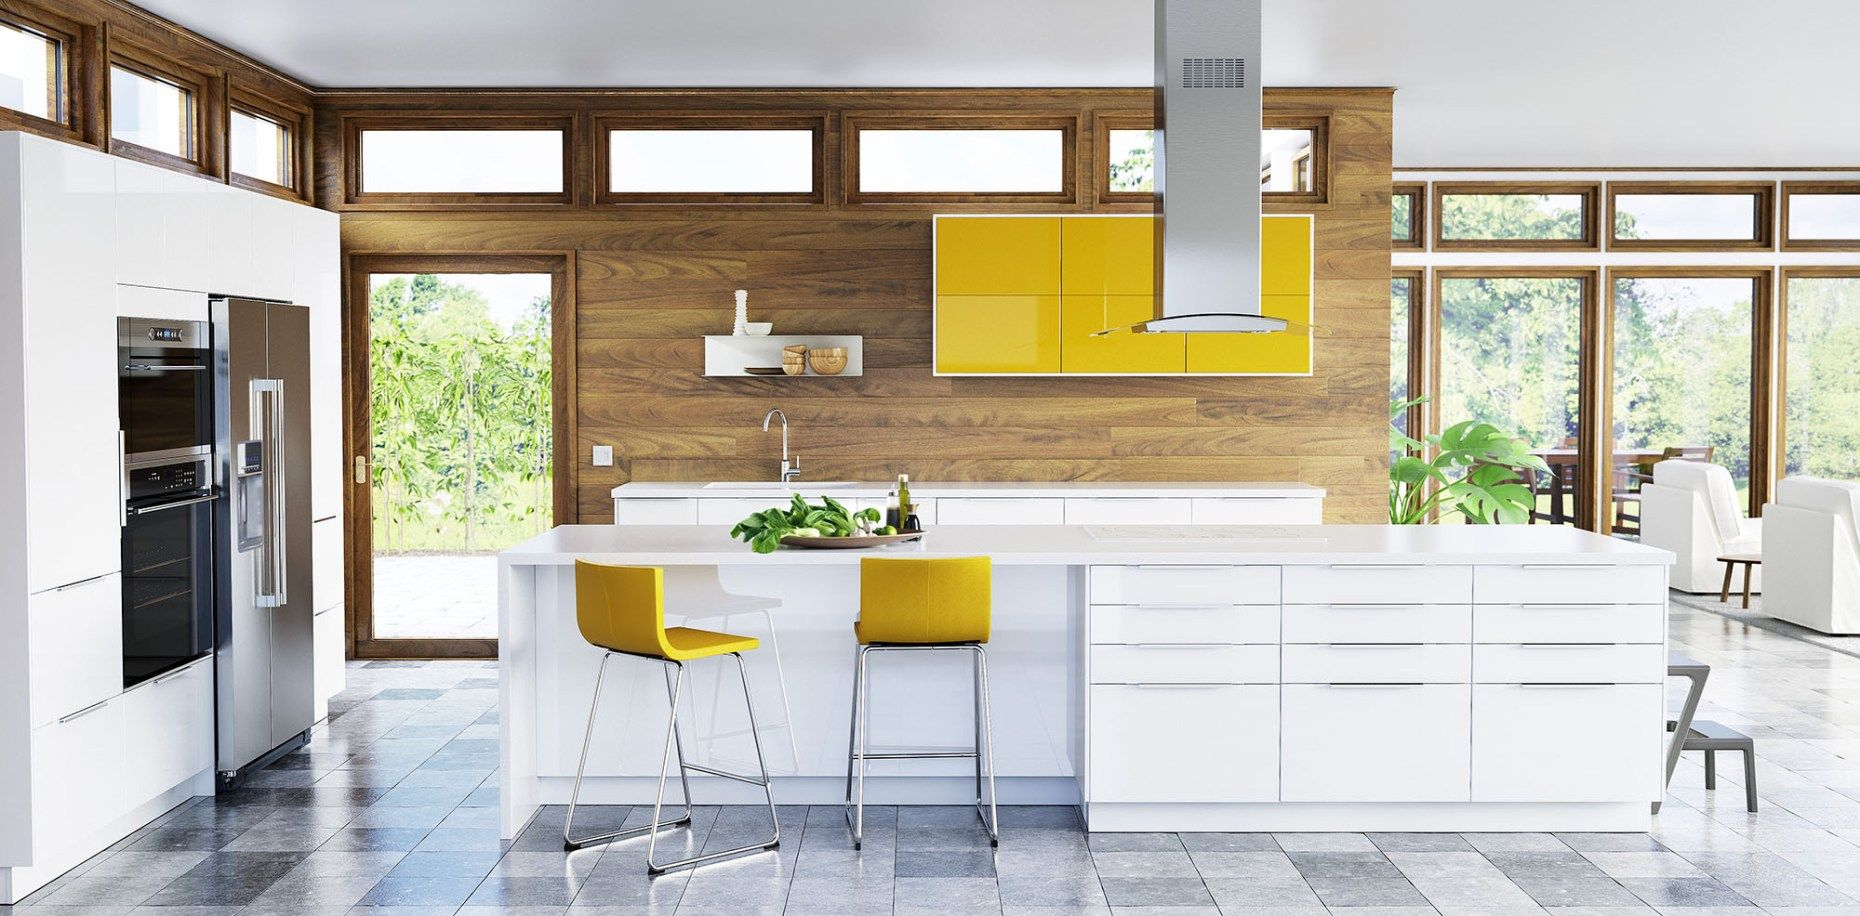 New Ikea Sektion Kitchen Ringhult High Gloss White And Jarsta High Gloss Yellow Cnw Group Ikea Canada Ikea New Kitchen New Kitchen Cabinets New Kitchen